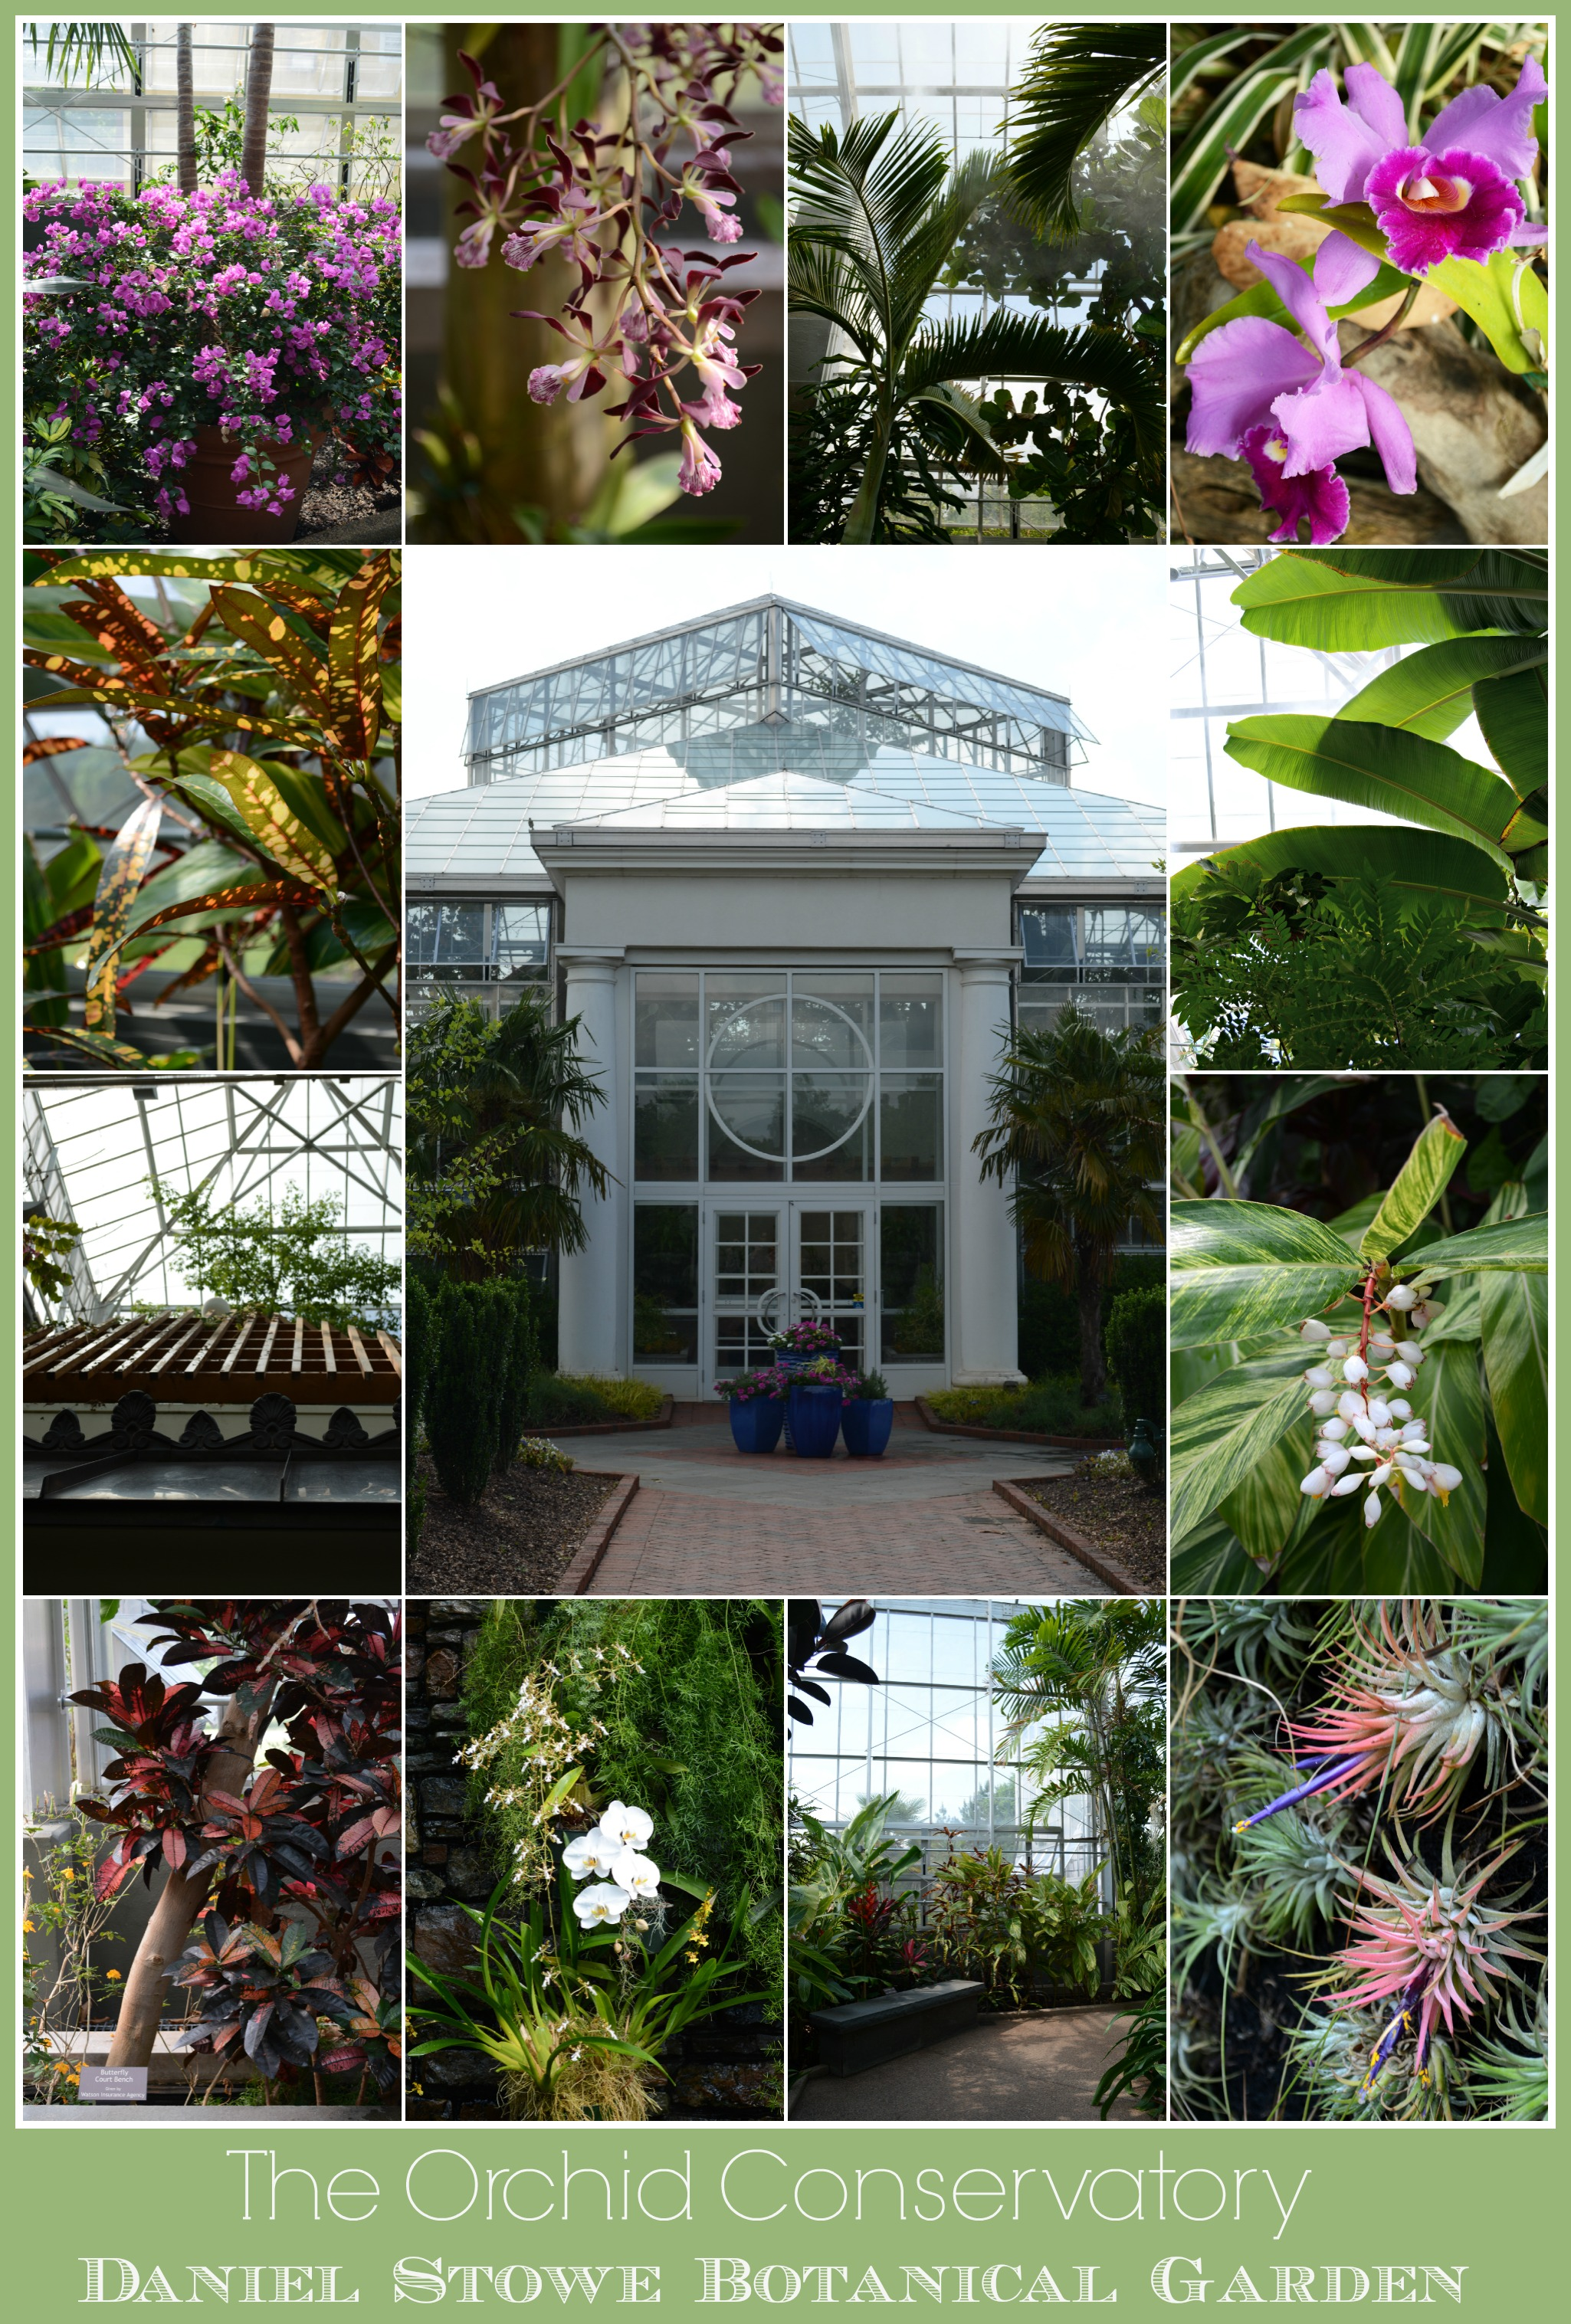 daniel stowe botanical garden orchid conservatory home is where